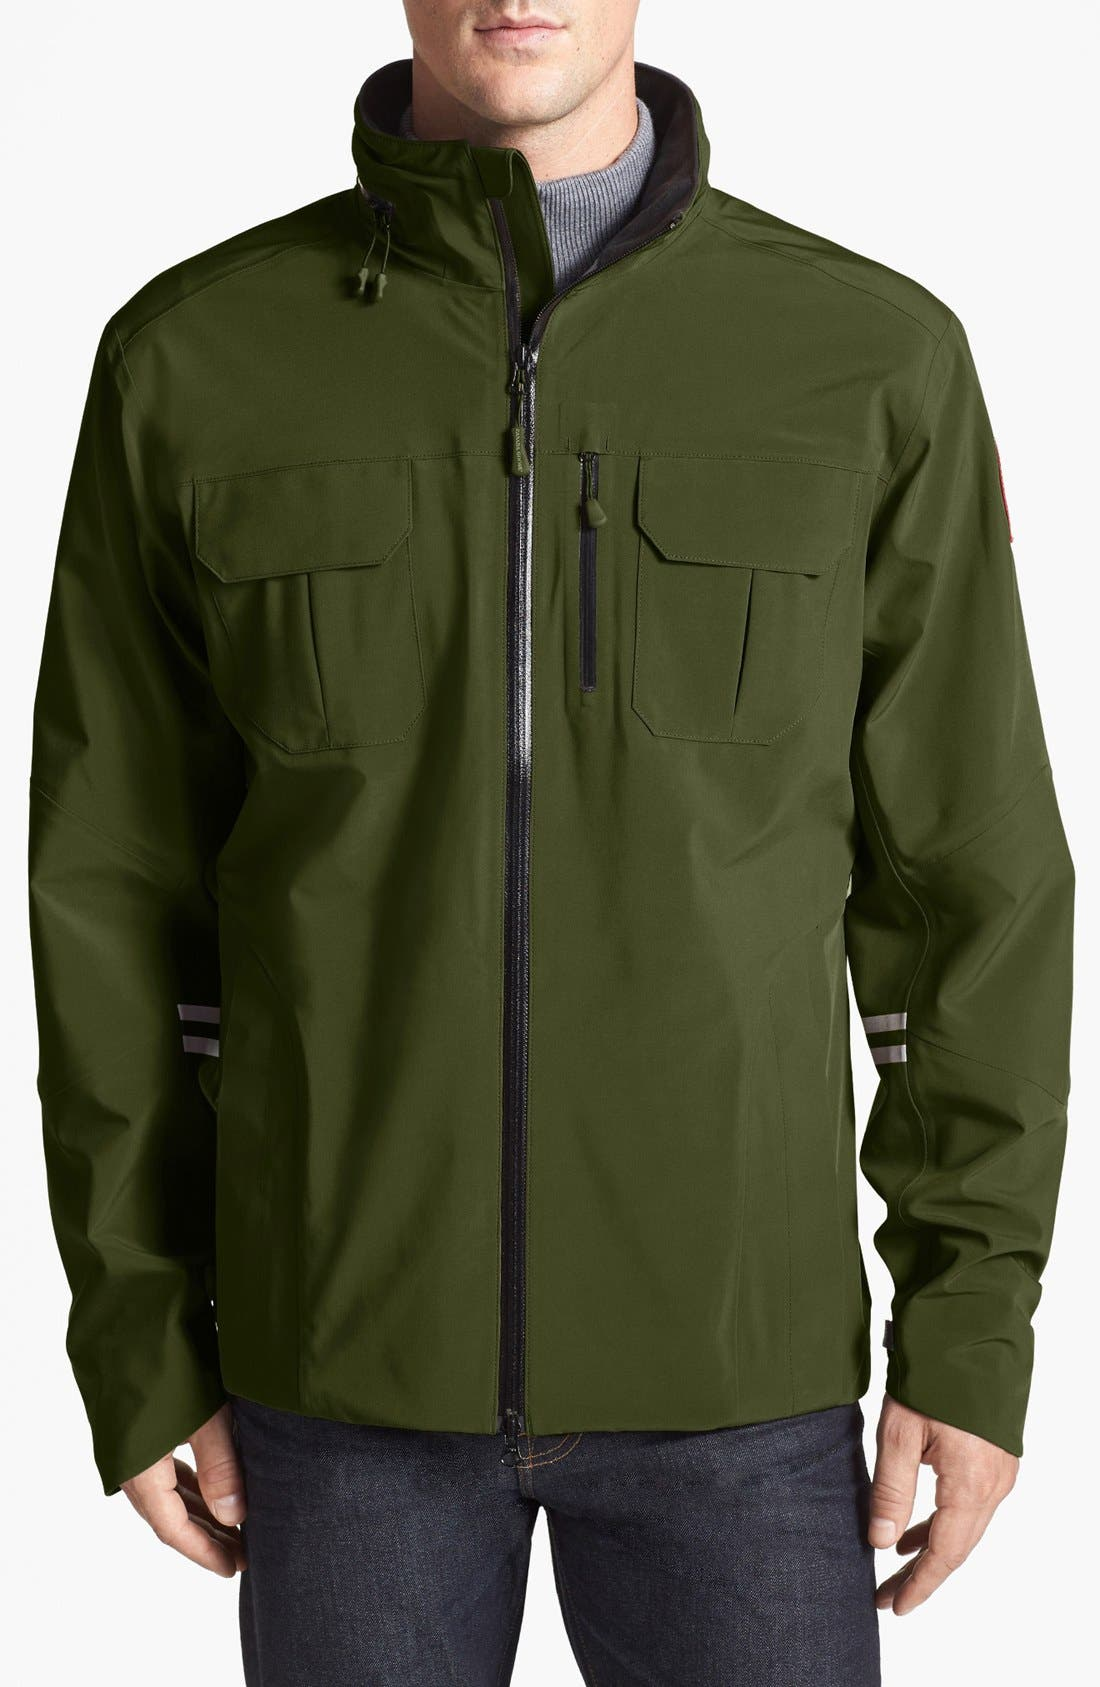 Alternate Image 1 Selected - Canada Goose 'Moraine' Jacket